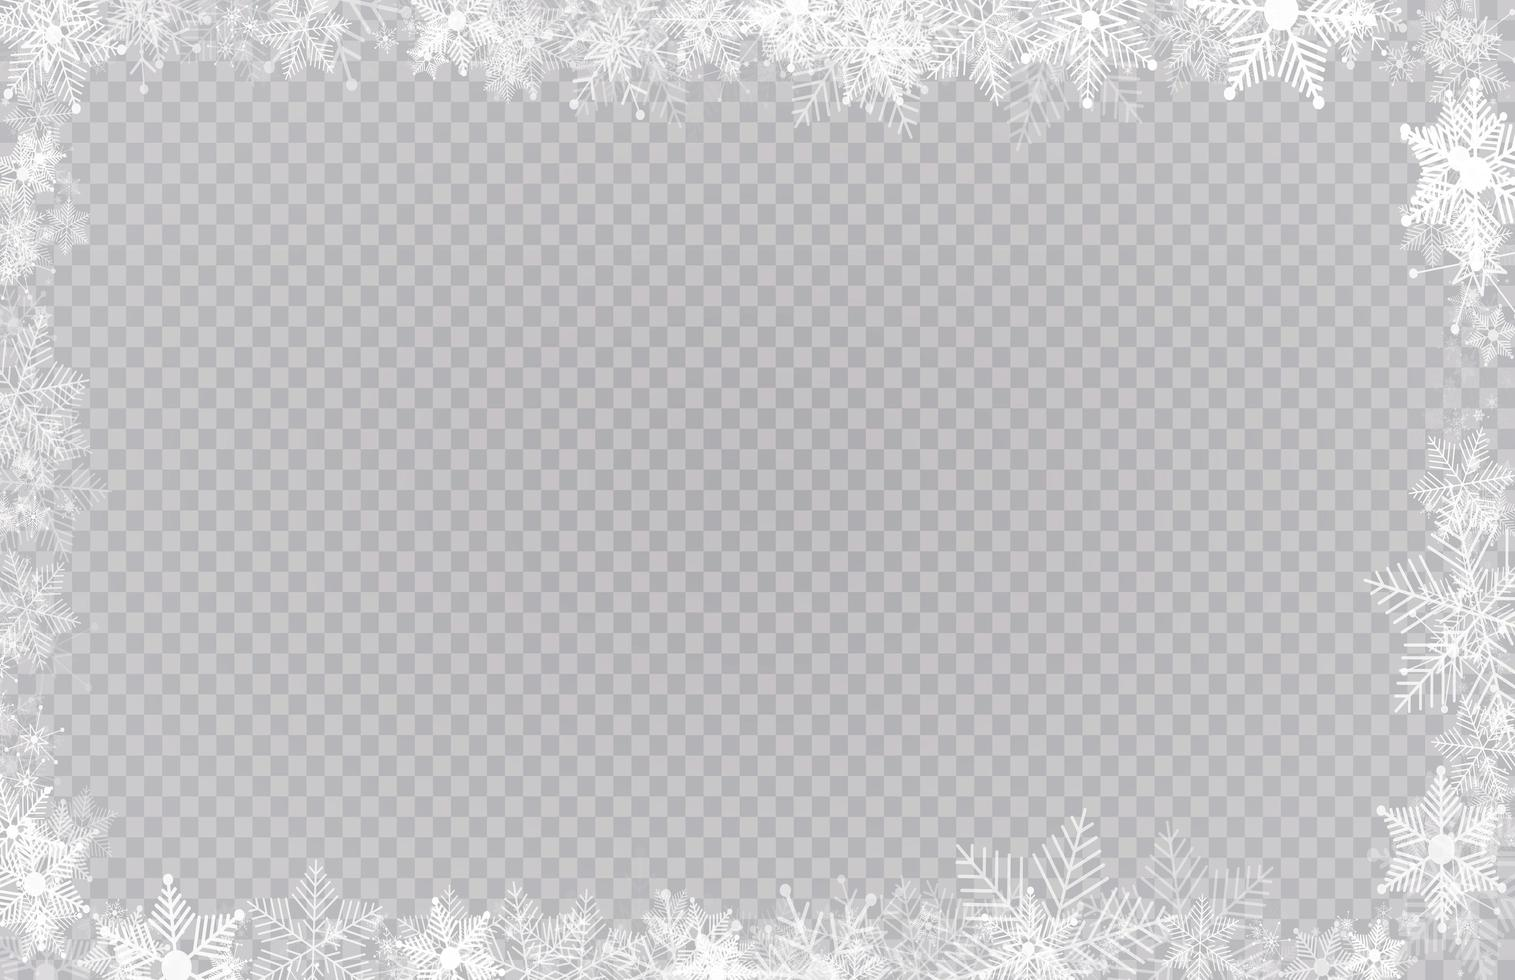 Rectangular winter snow frame border with stars, sparkles and snowflakes vector